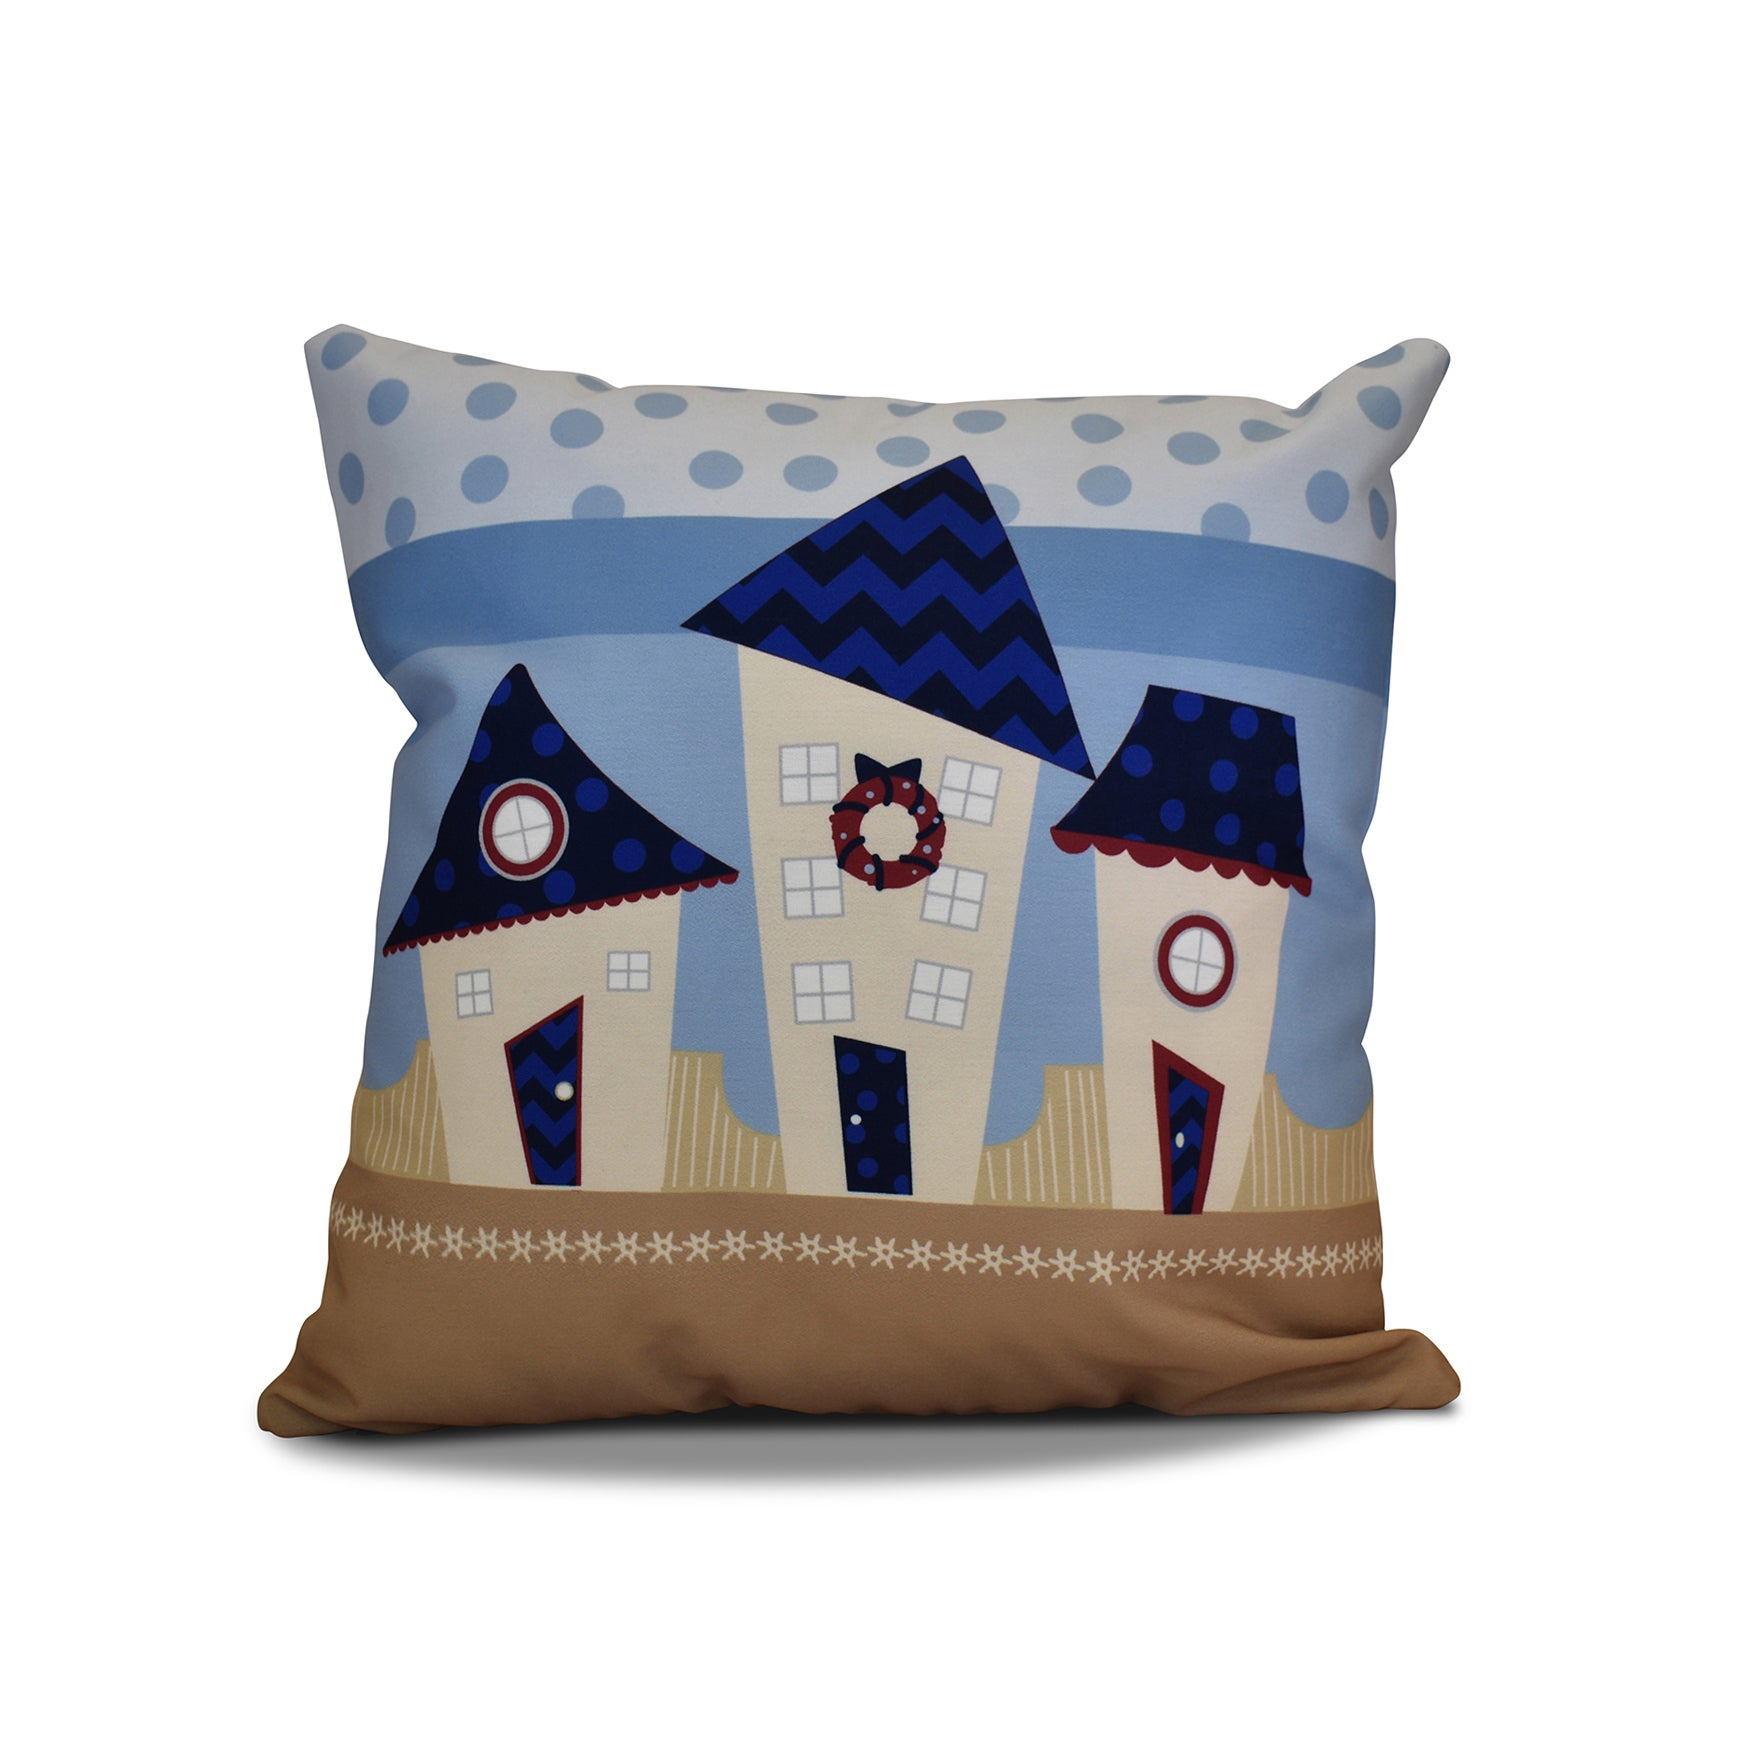 20 x 20-inch Coastal Houses Geometric Holiday Print Outdoor Pillow (Green)